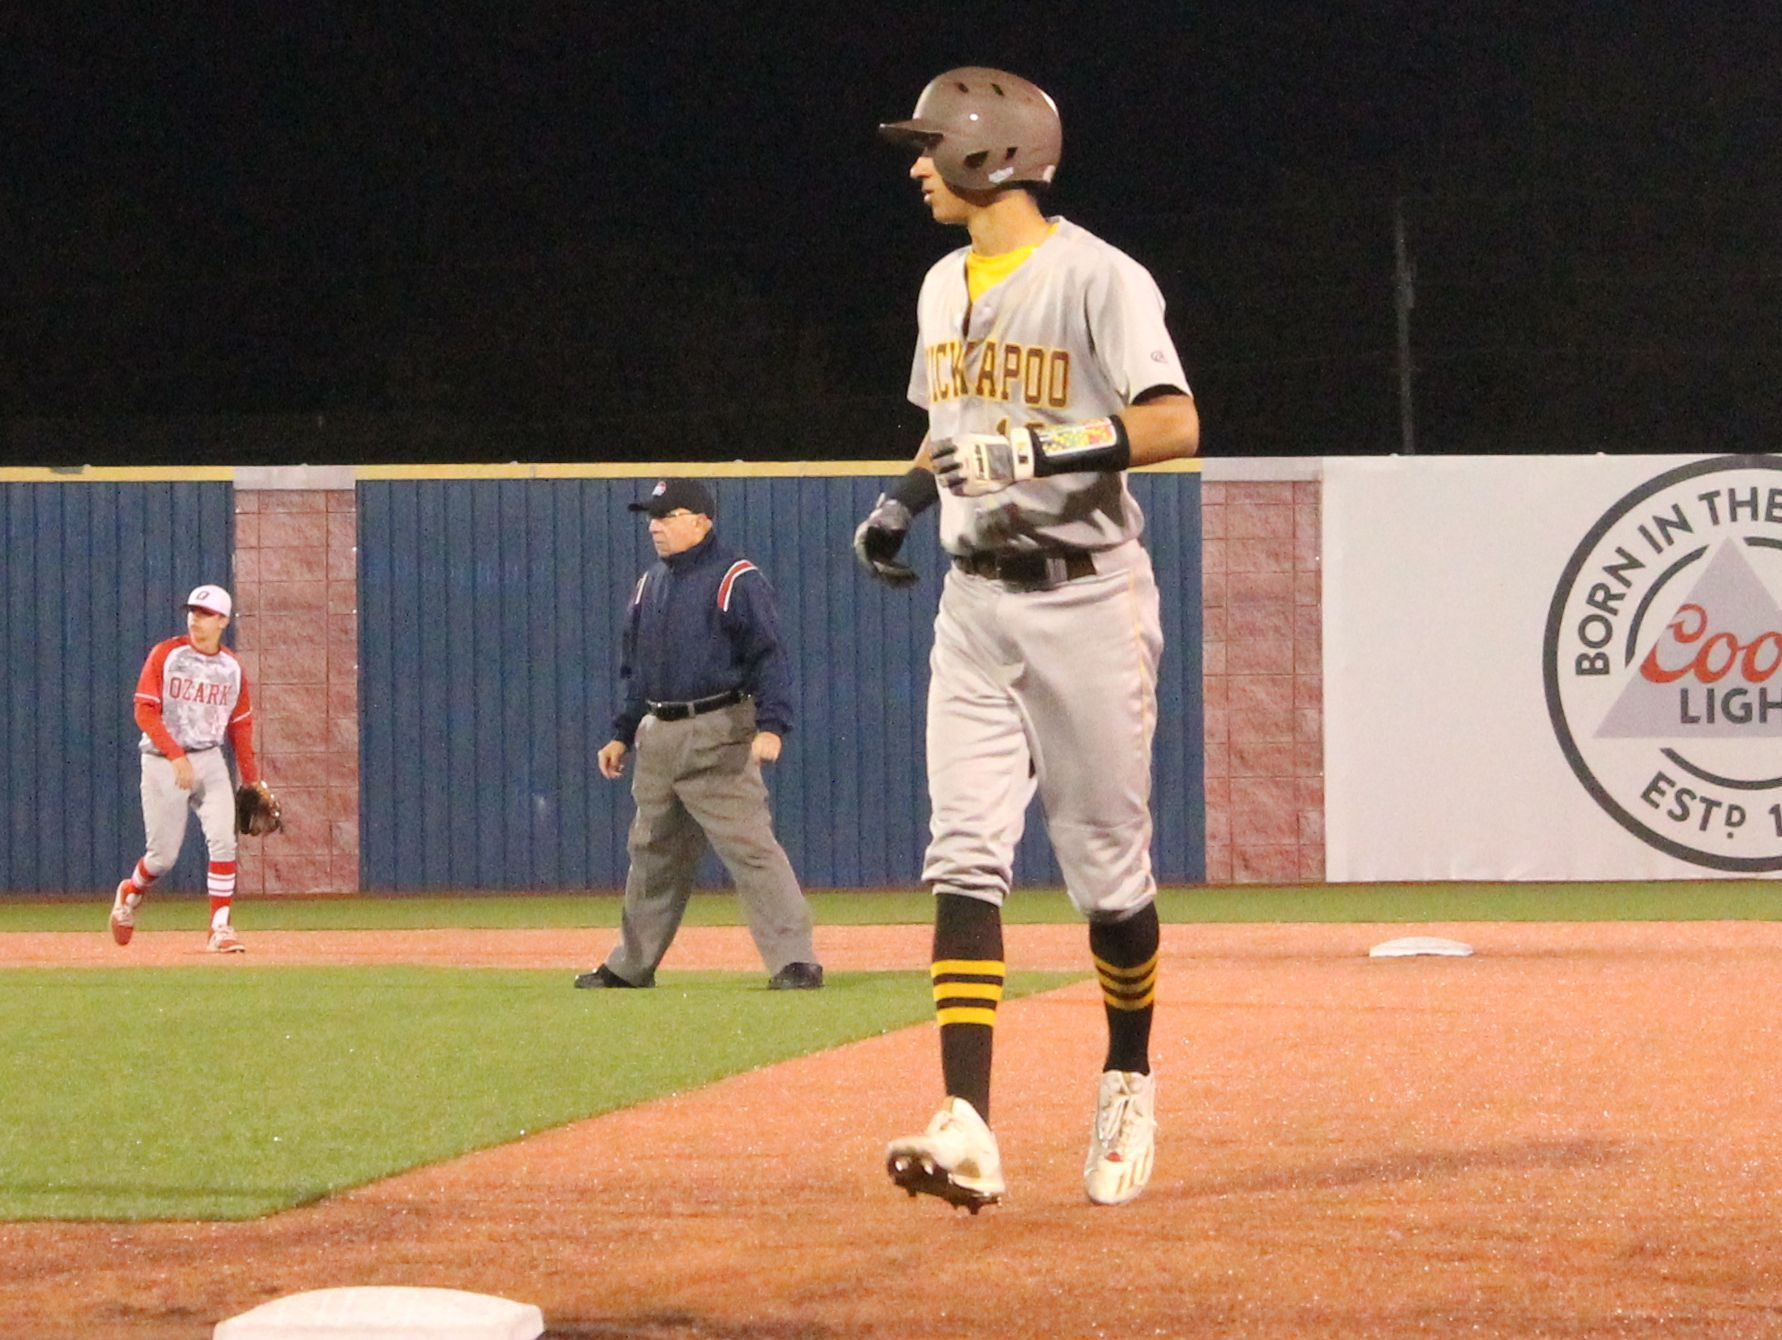 Kickapoo senior shortstop Robbie Merced jogs back to first base during a game against Ozark Tuesday, March 28, 2017 at U.S. Baseball Park in Ozark.